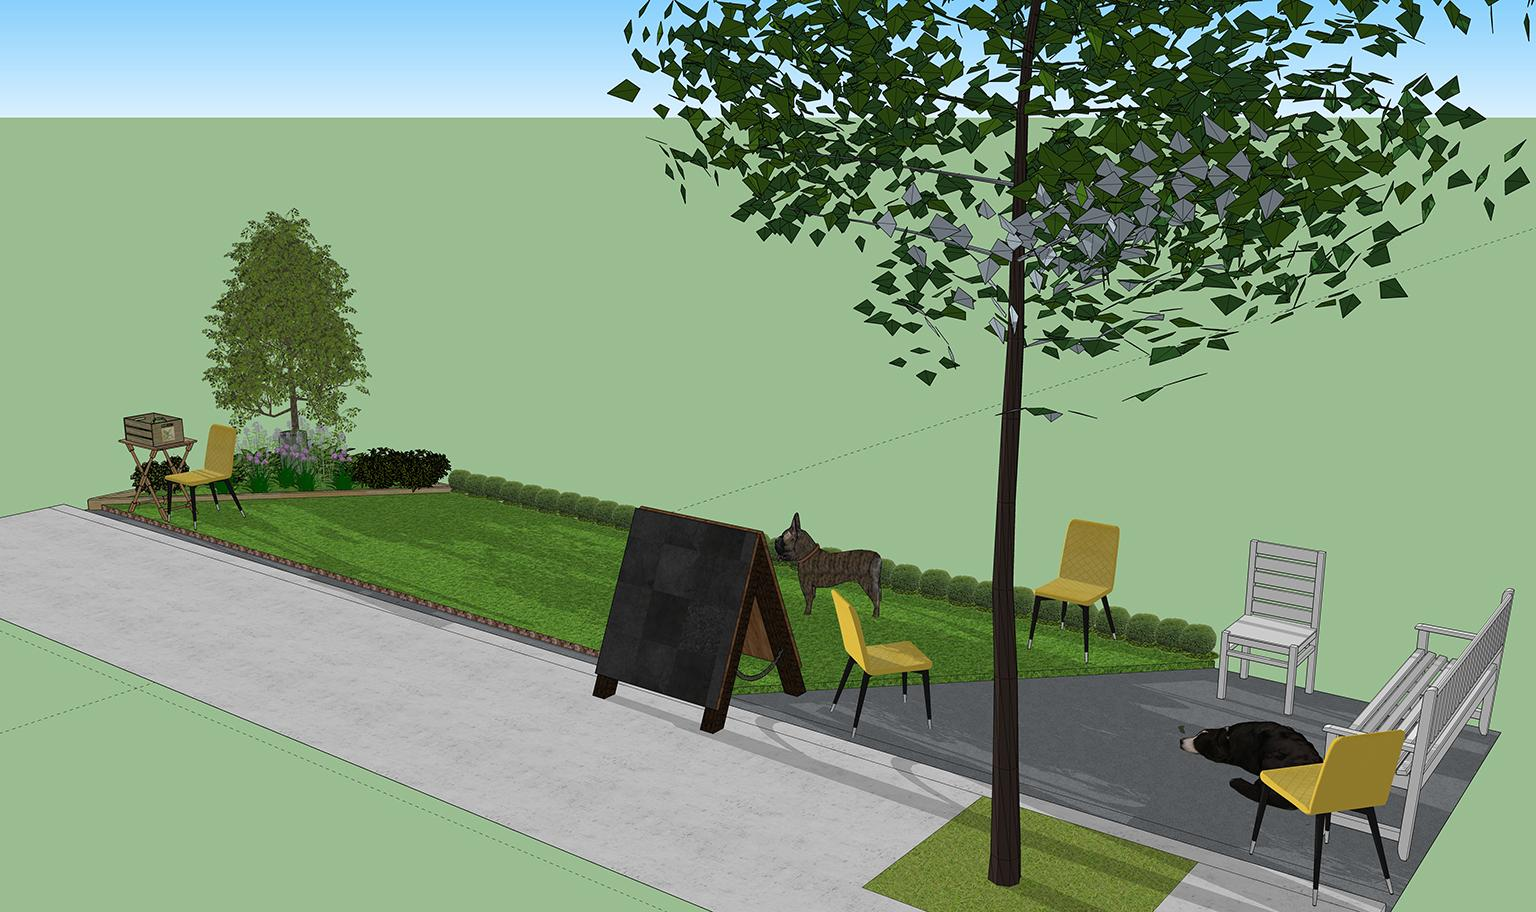 A rendering of the dog-friendly green space planned for two parking spaces in River North on Friday, Sept. 21, as part of PARK(ing) Day. (Courtesy of The Anti-Cruelty Society)